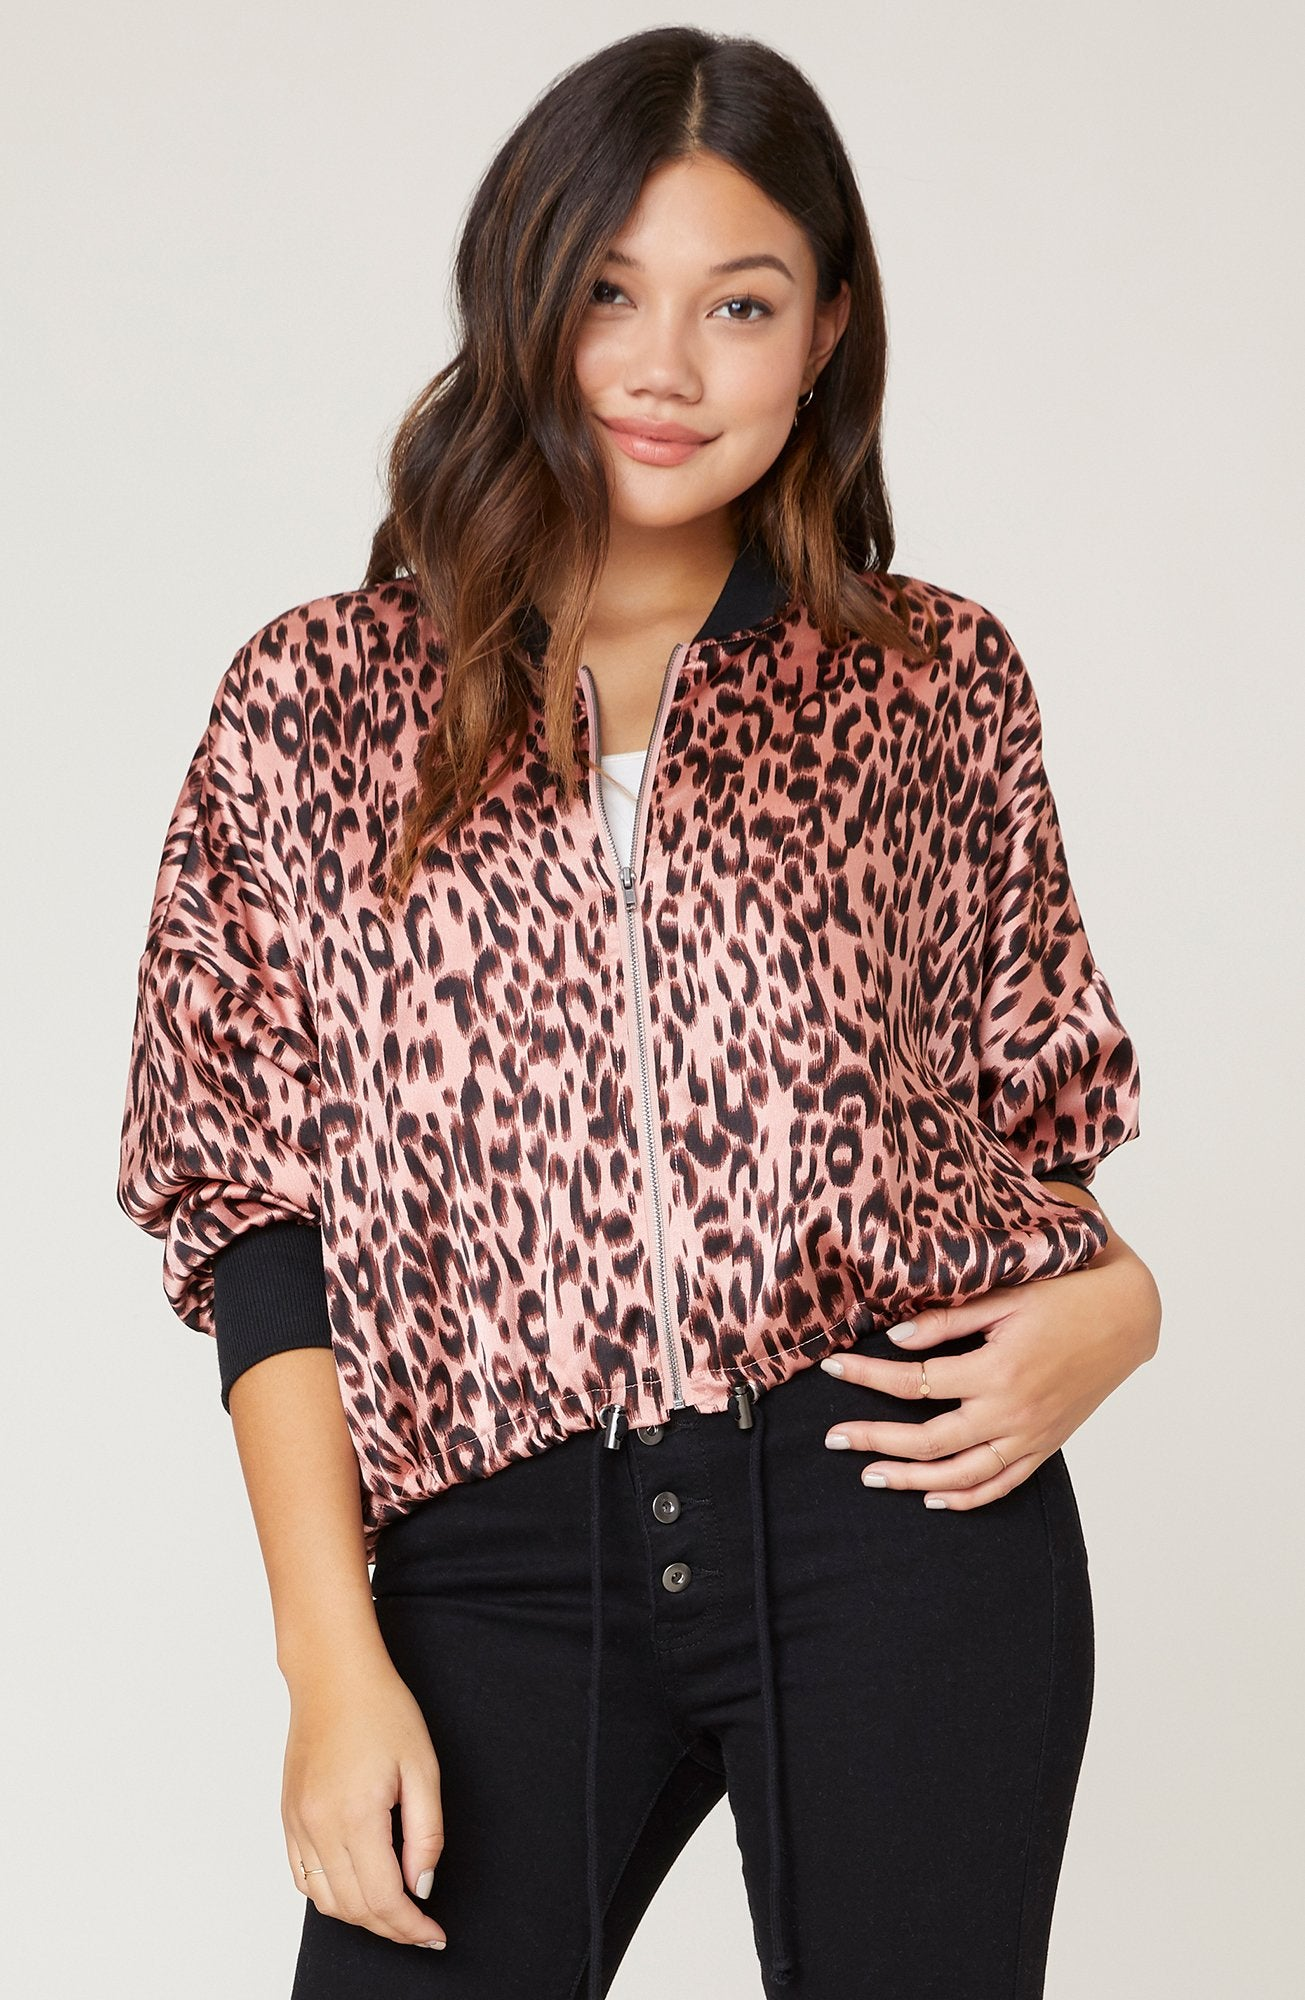 Like It Rawr Cheetah Bomber